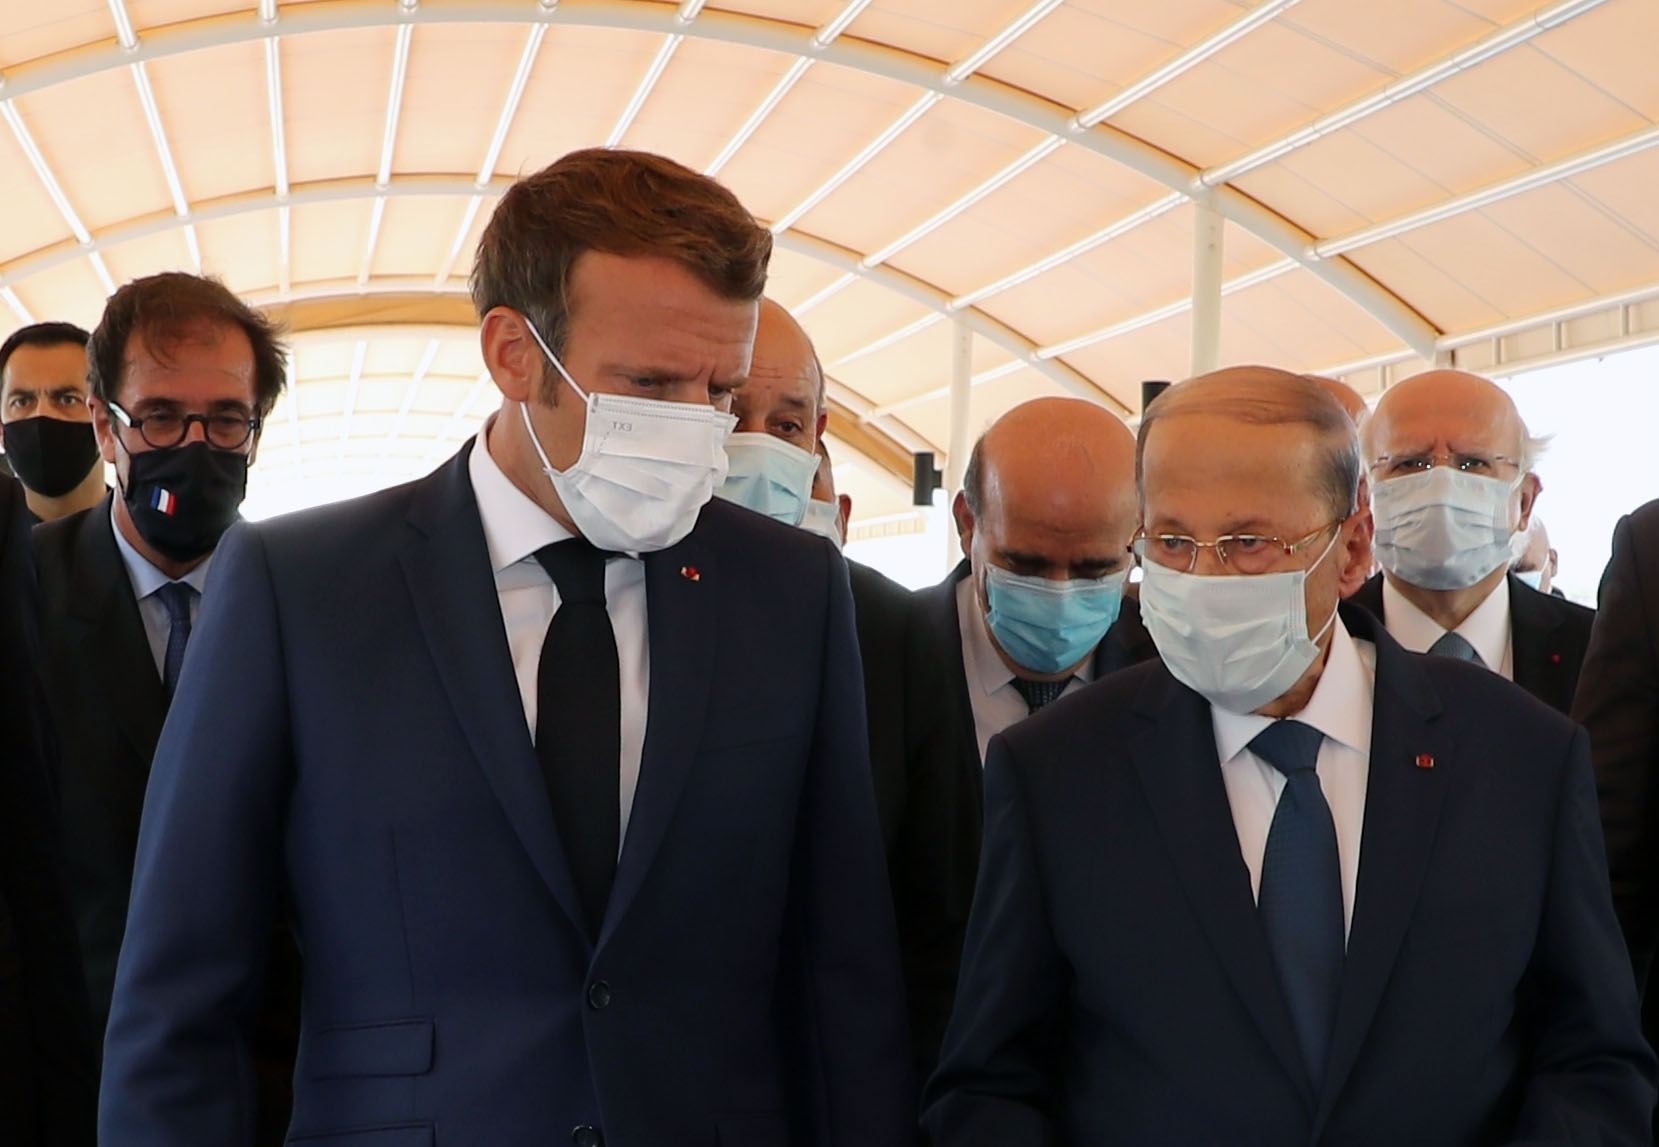 French President Emmanuel Macron, left, walks with Lebanese President Michel Aoun at Rafic Hariri International Airport in Beirut, Lebanon, on August 6.